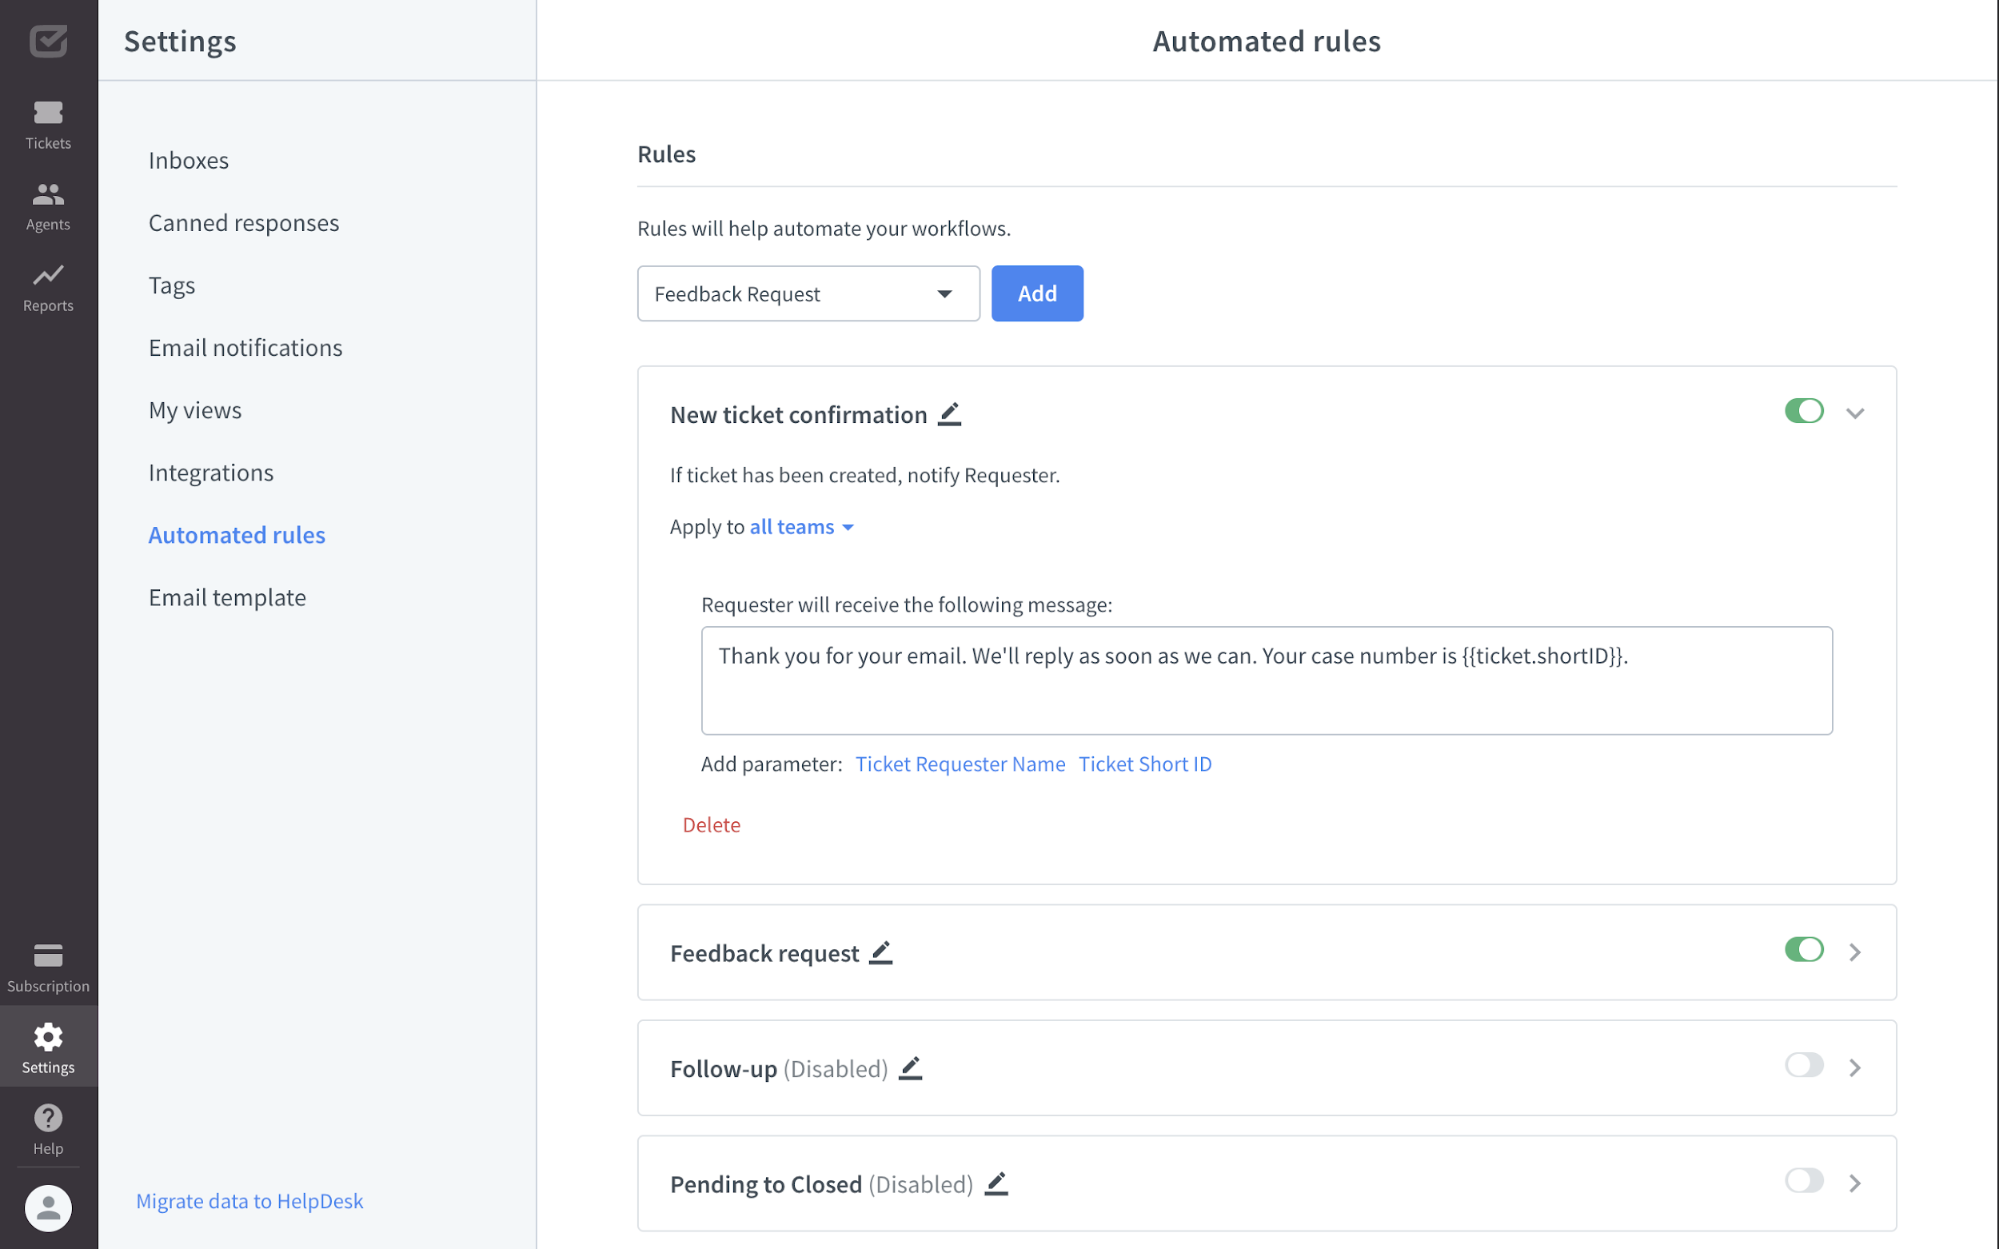 Automated rules view in HelpDesk app